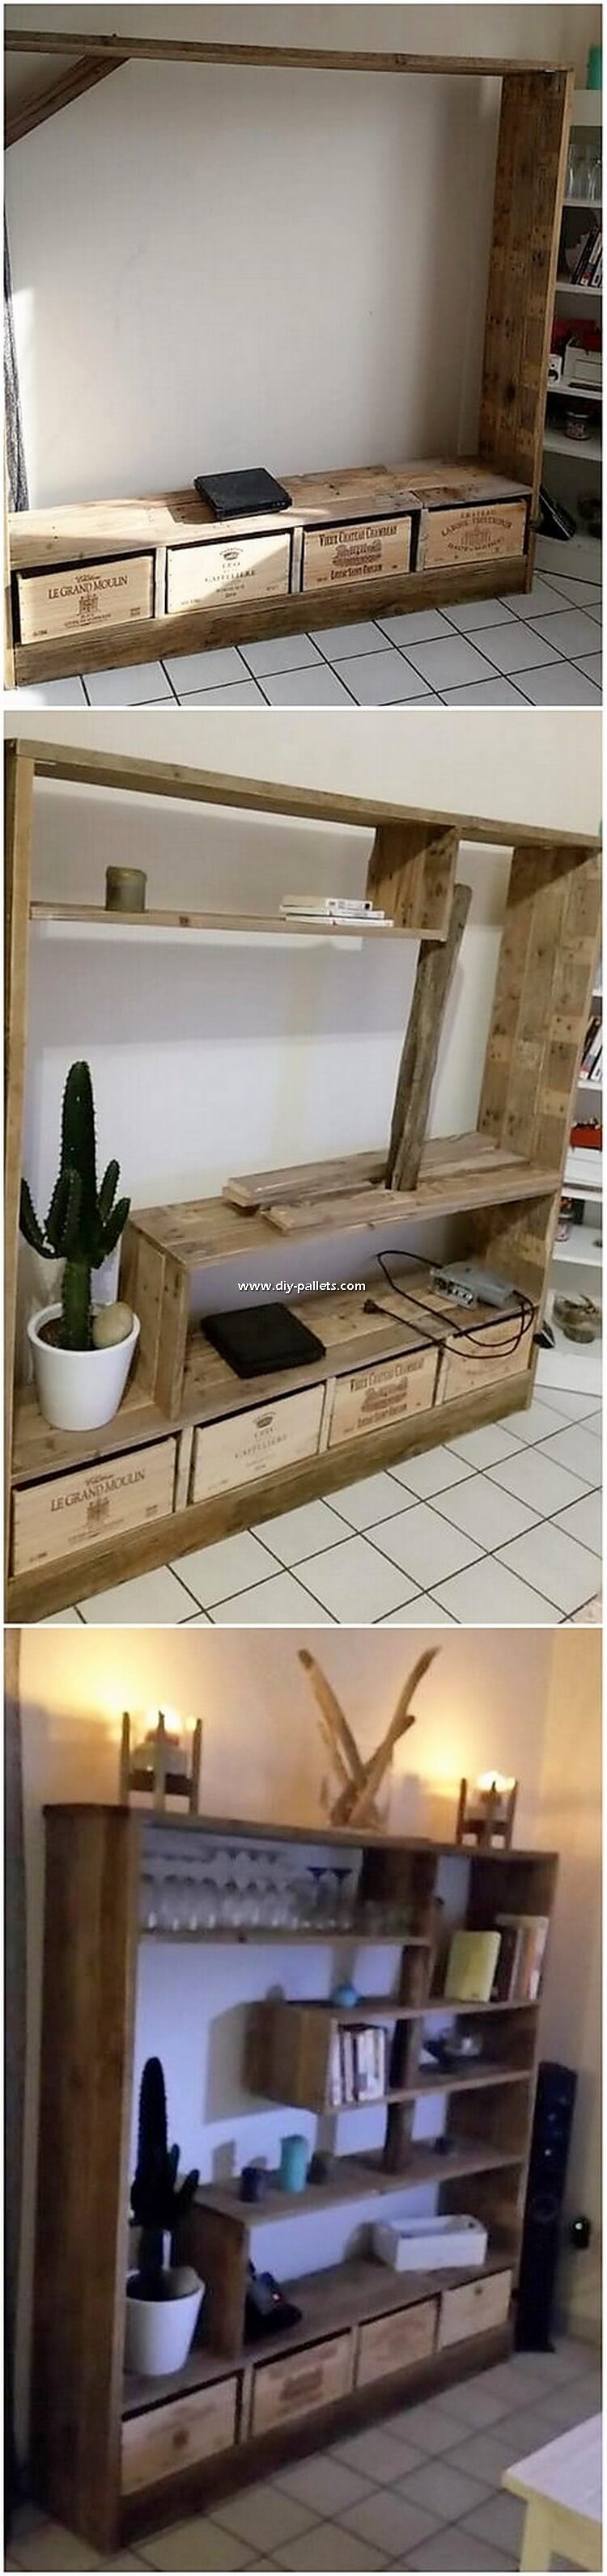 Pallet Shelving Unit with Drawers